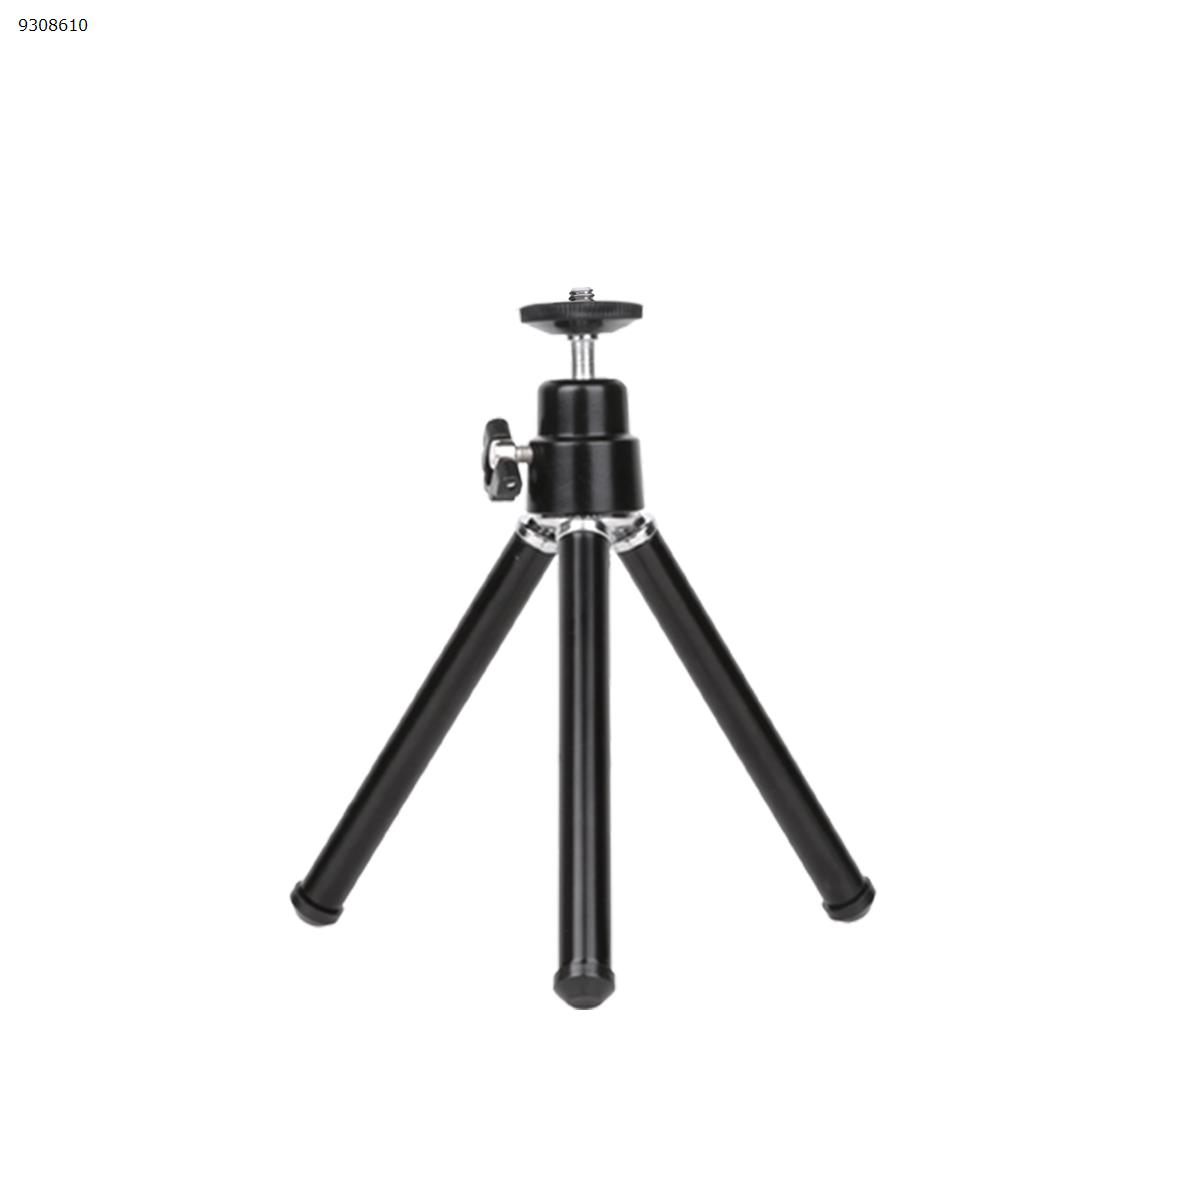 Mini Tripod Mount Adapter For Gopro Digital Camera Self-Timer Smart phone For iphone Samsung Mobile Phone Scalable Tripod black Mobile Phone Mounts & Stands 2355